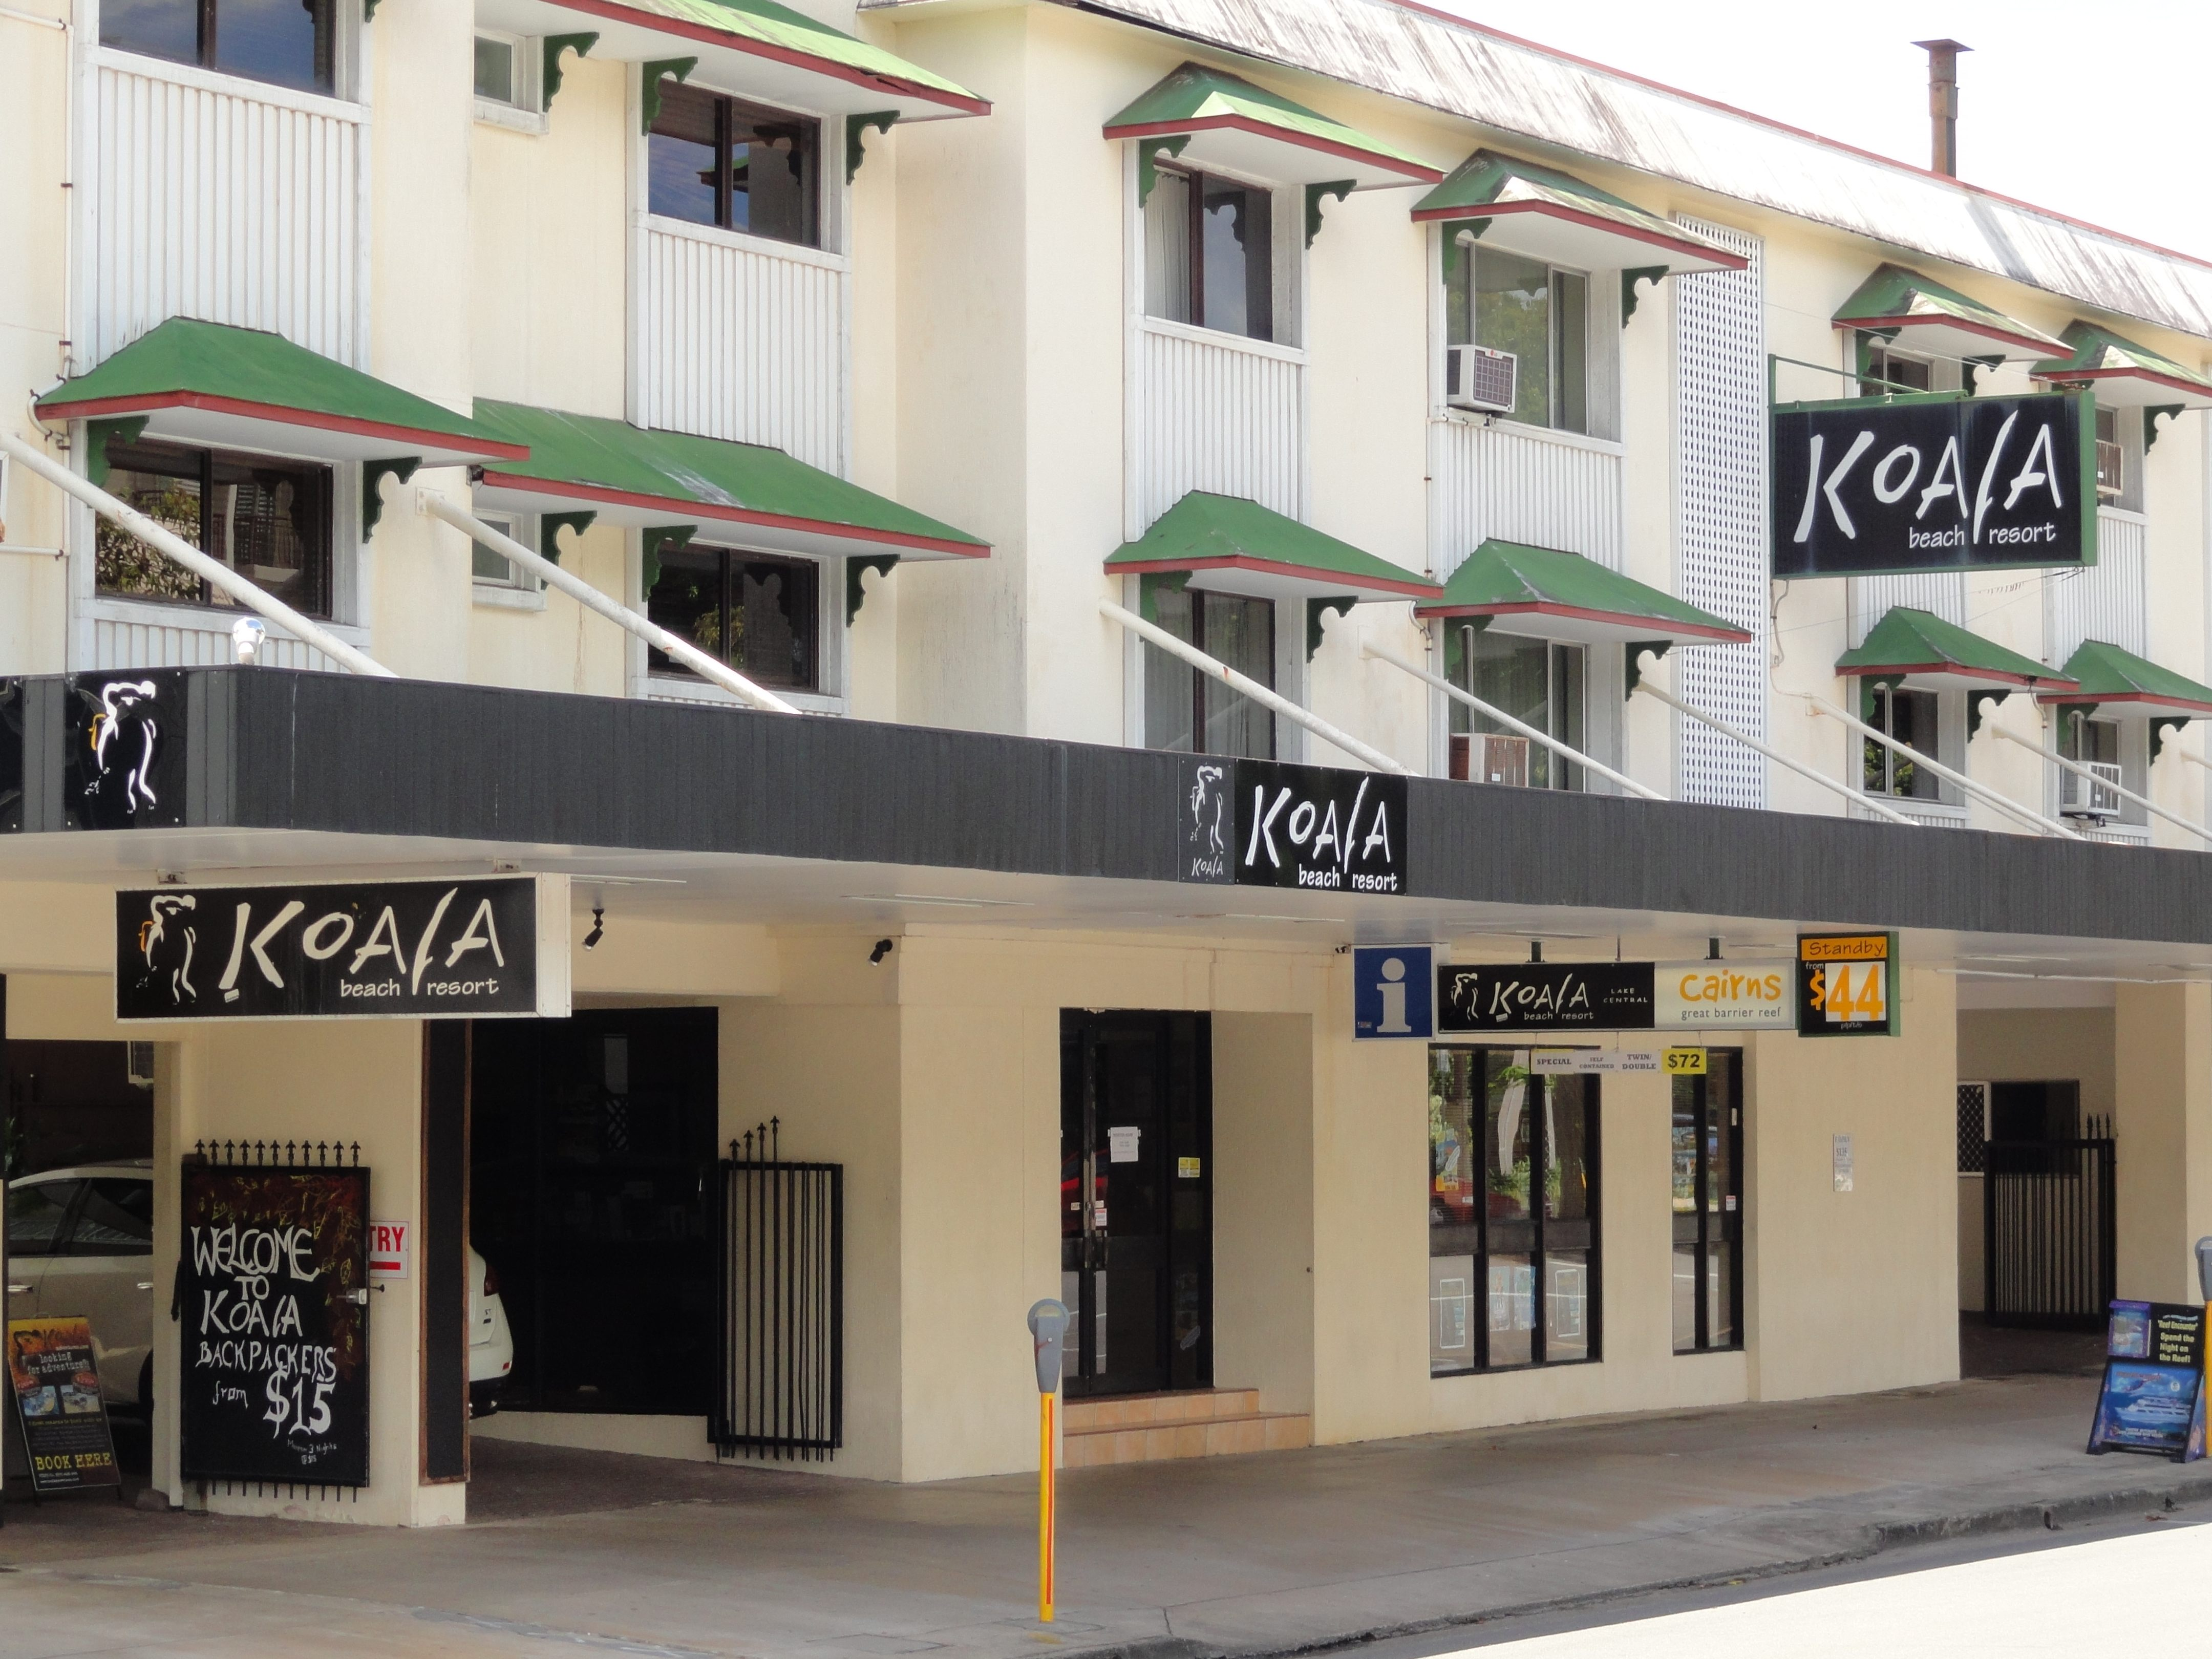 Koala Beach Resort